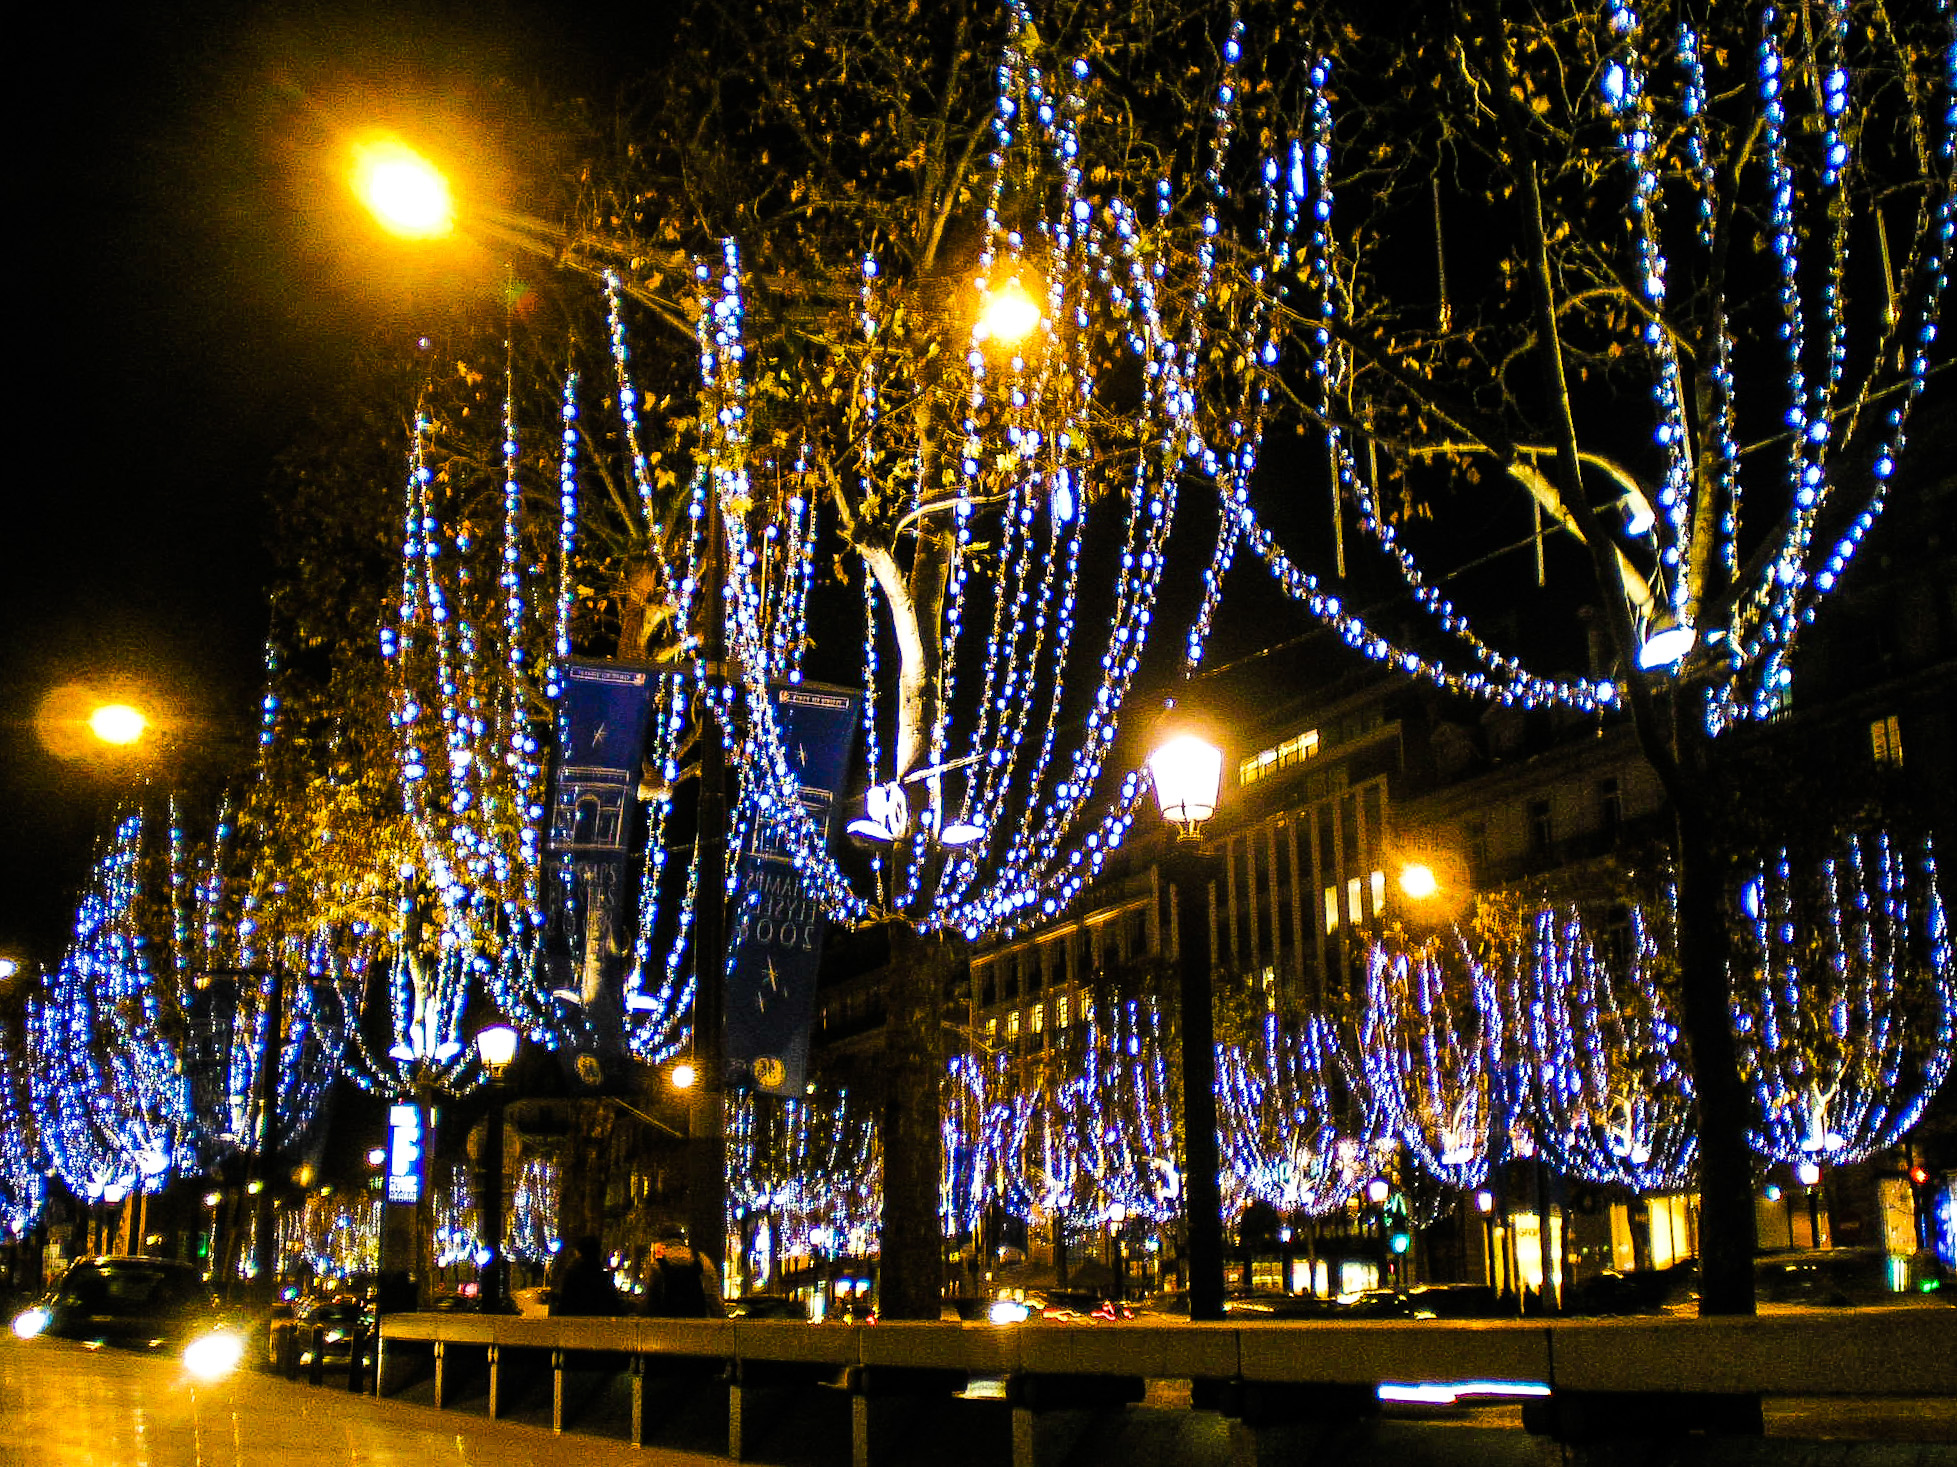 France, Paris, lights, night